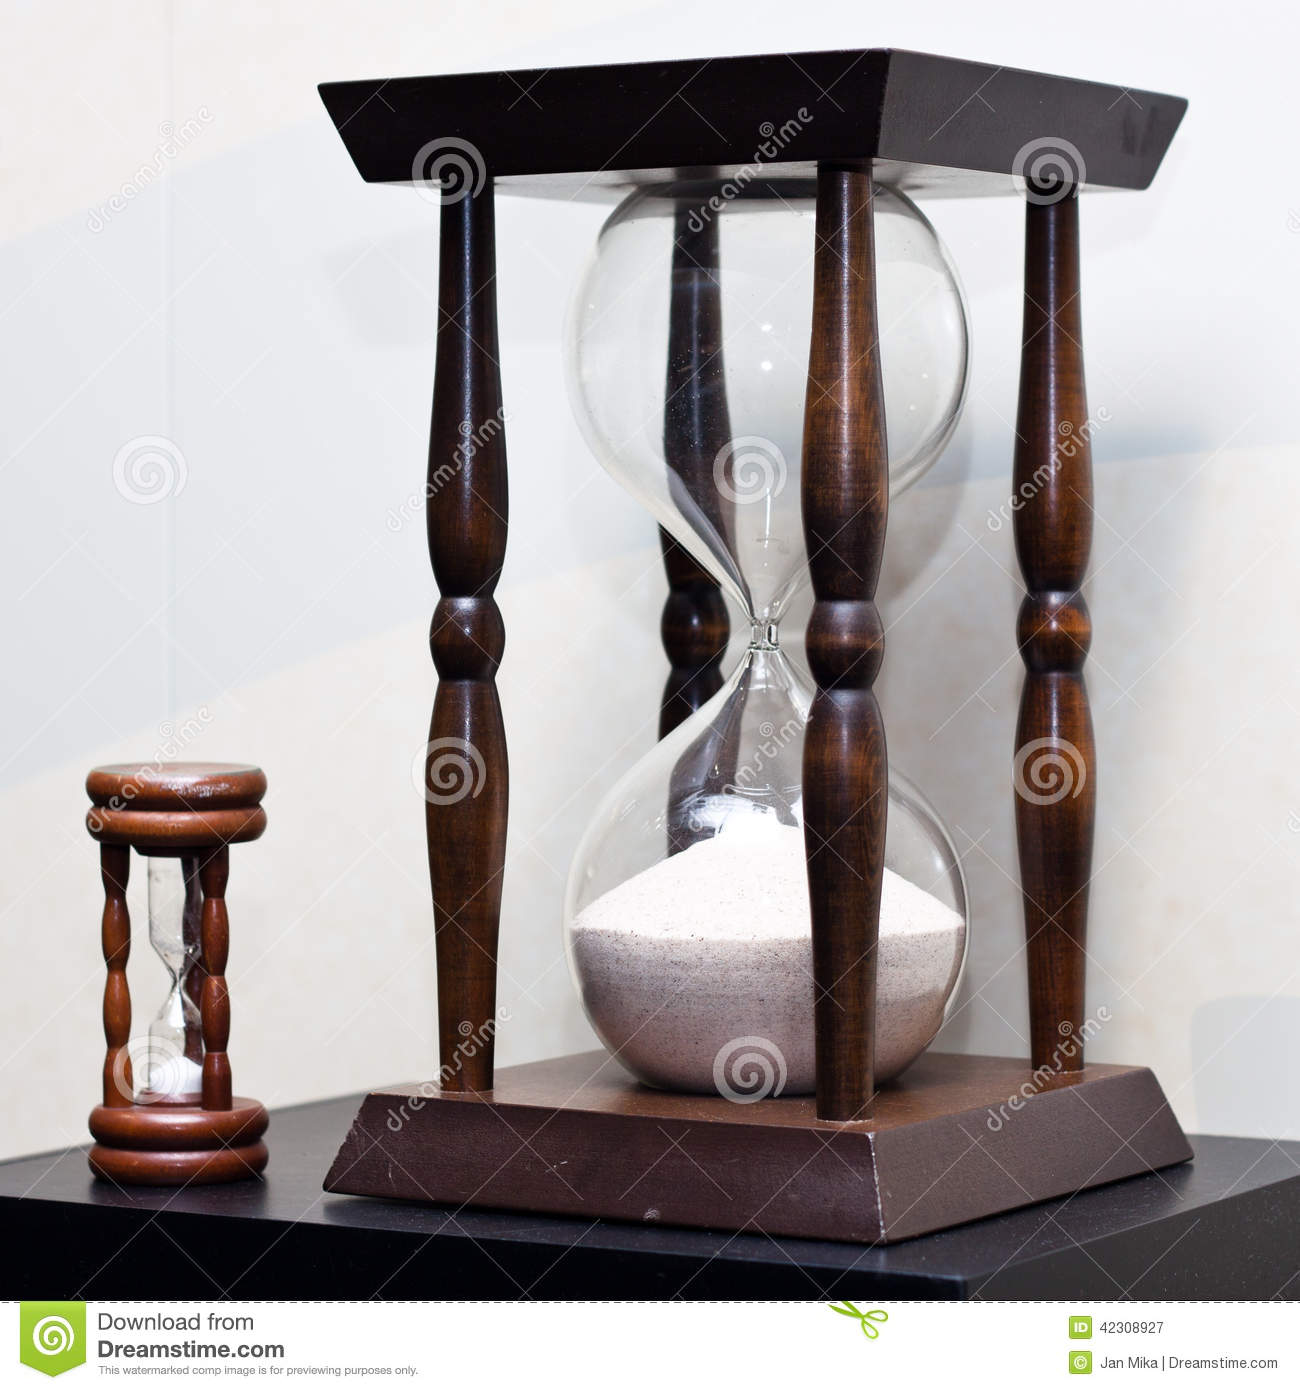 Big And Small Wooden Sand Clock Stock Photo - Image: 42308927